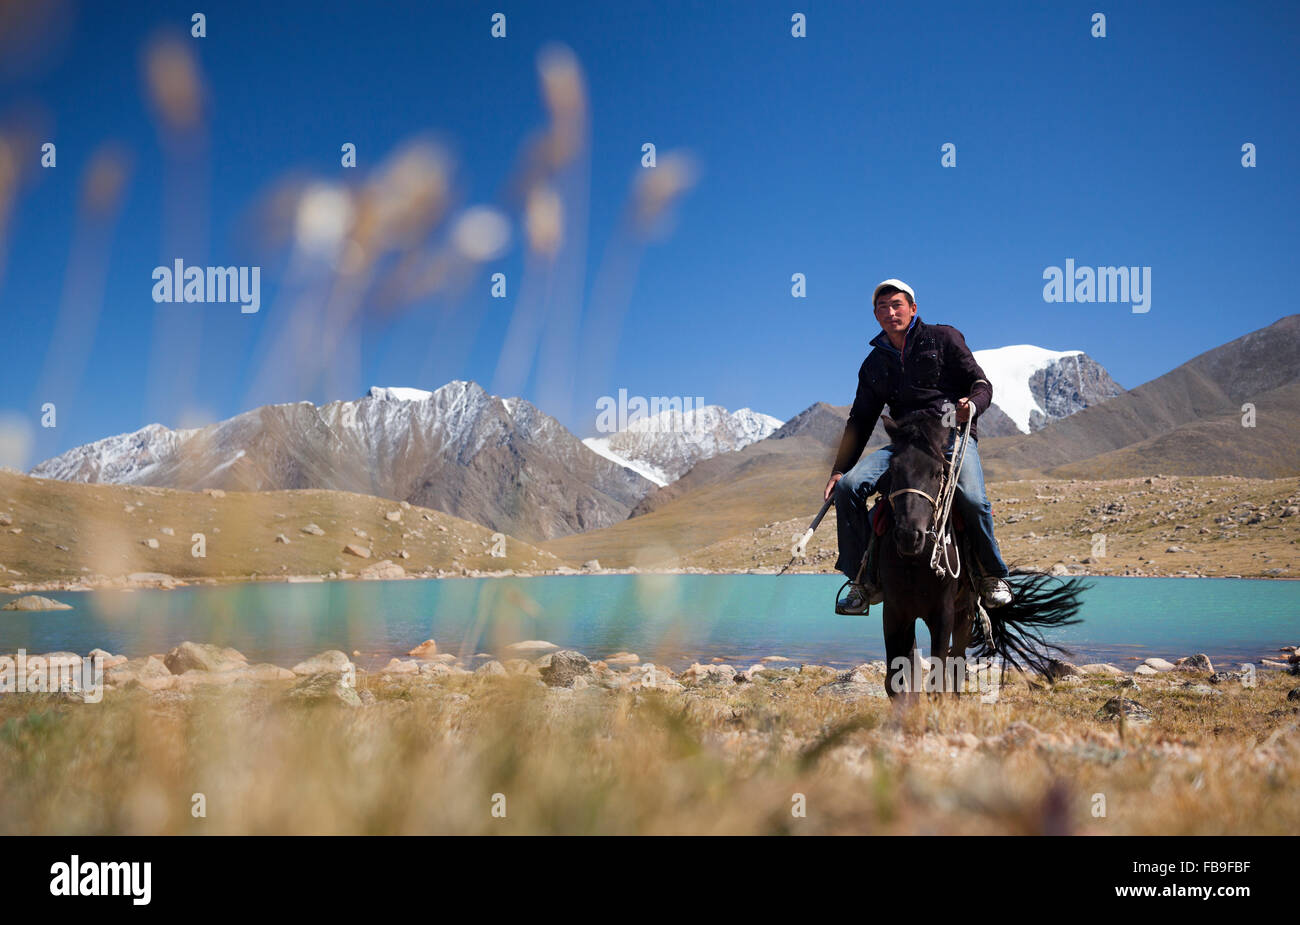 Tsaganaa, a guide and herder riding near a glacial lake in the remote Kharkhiraa Turgen National Park, Mongolia. - Stock Image